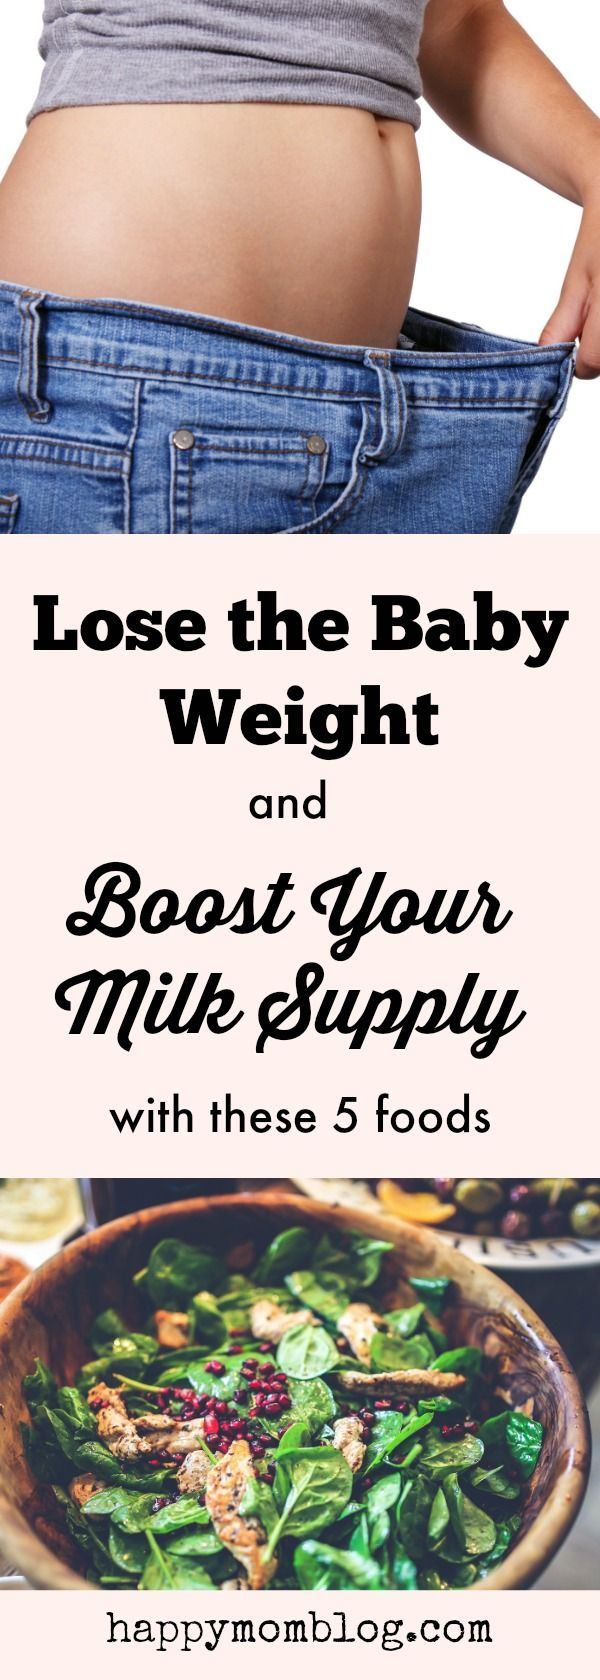 Check out these 5 foods that will boost your milk supply and help you lose the baby weight too!